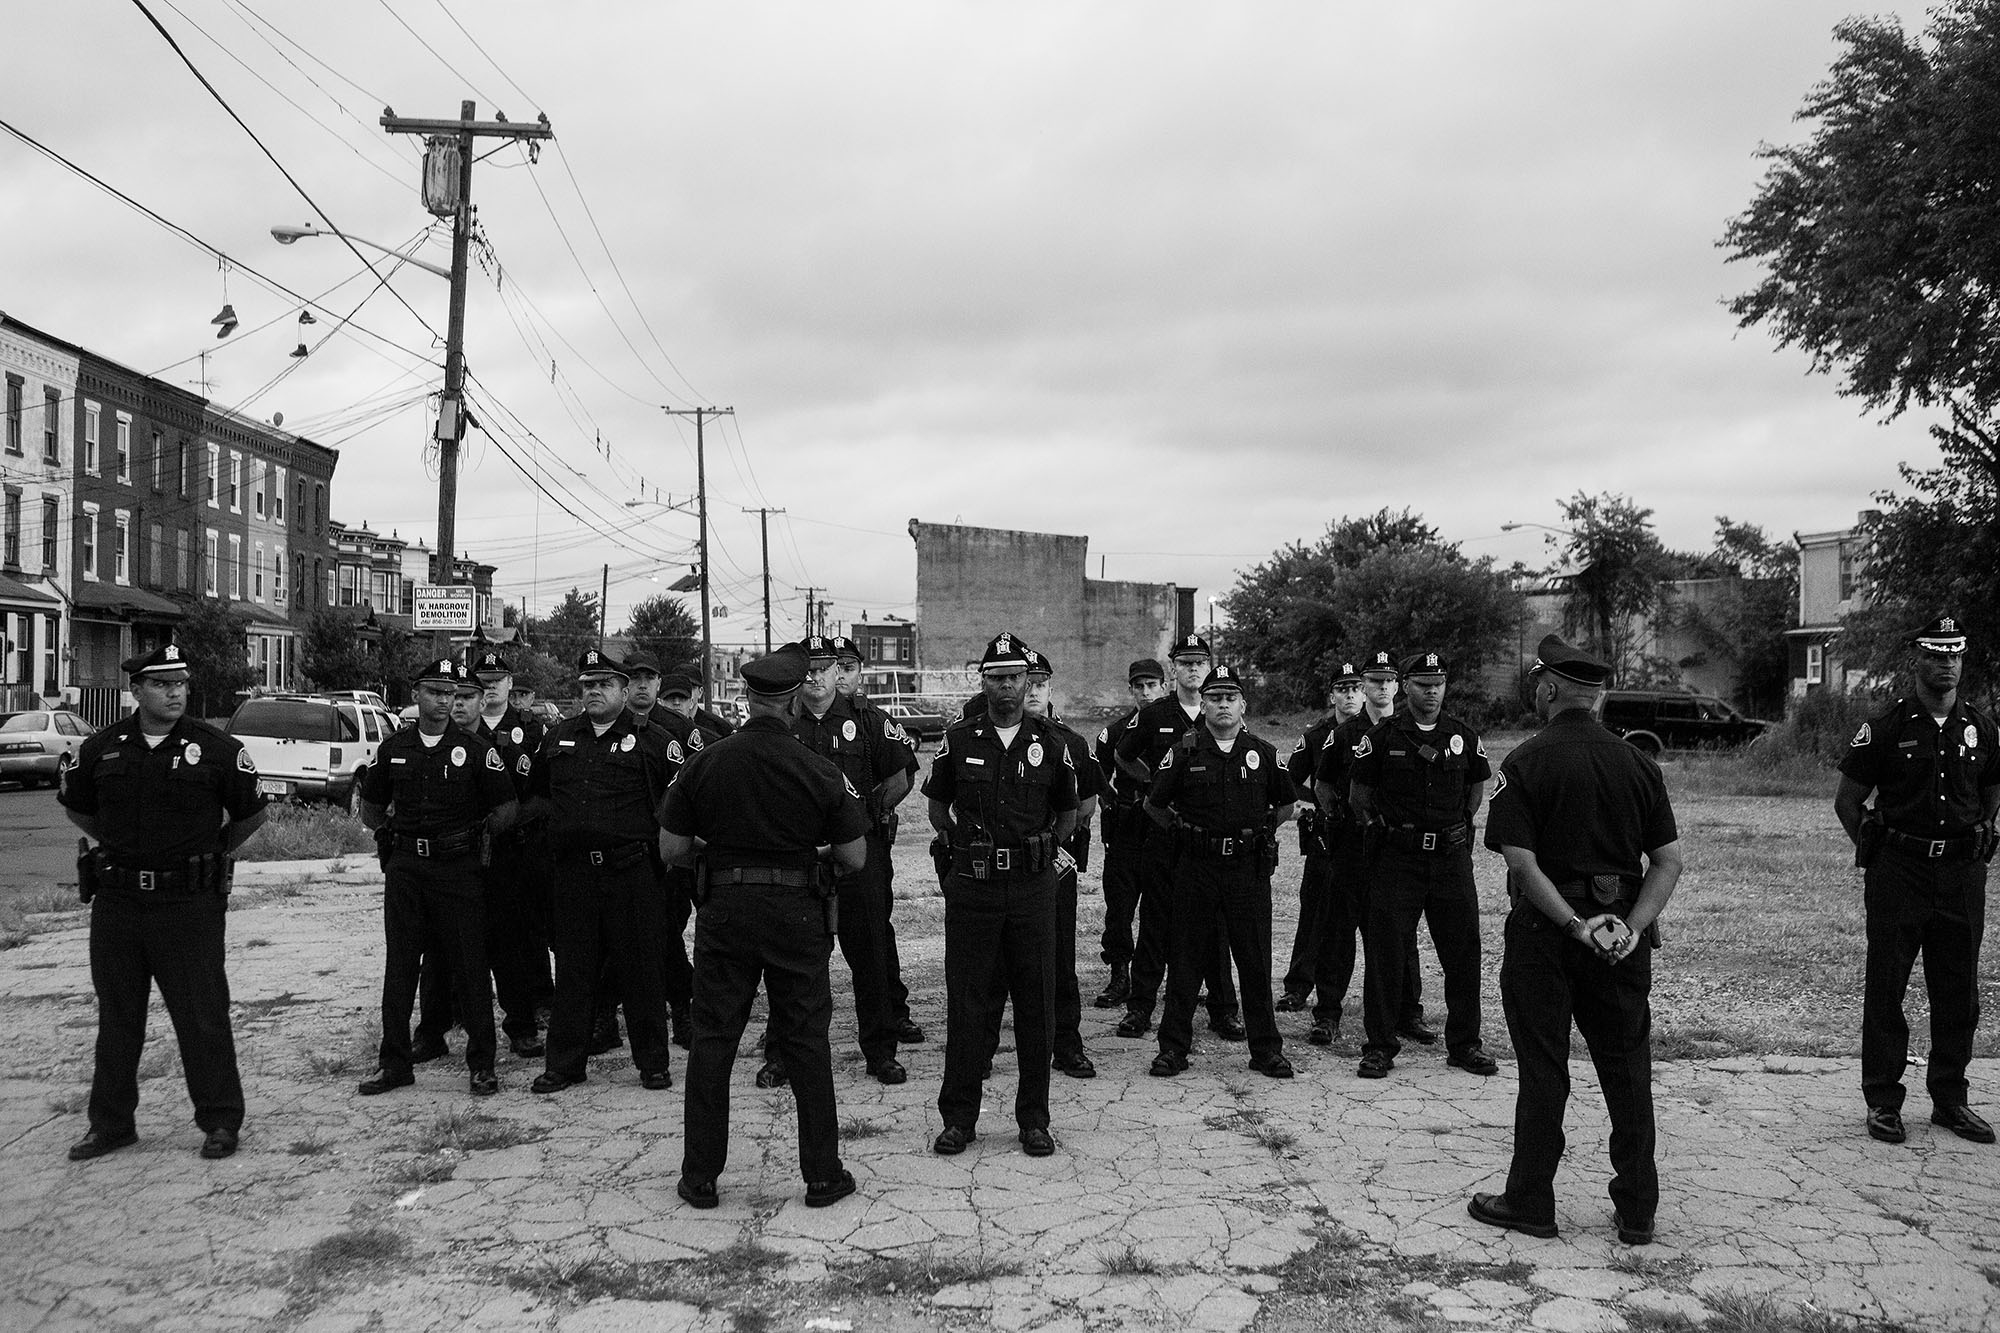 Camden County Police Officers take place in a mobilization in North Camden, one of the most dangerous parts of the city.